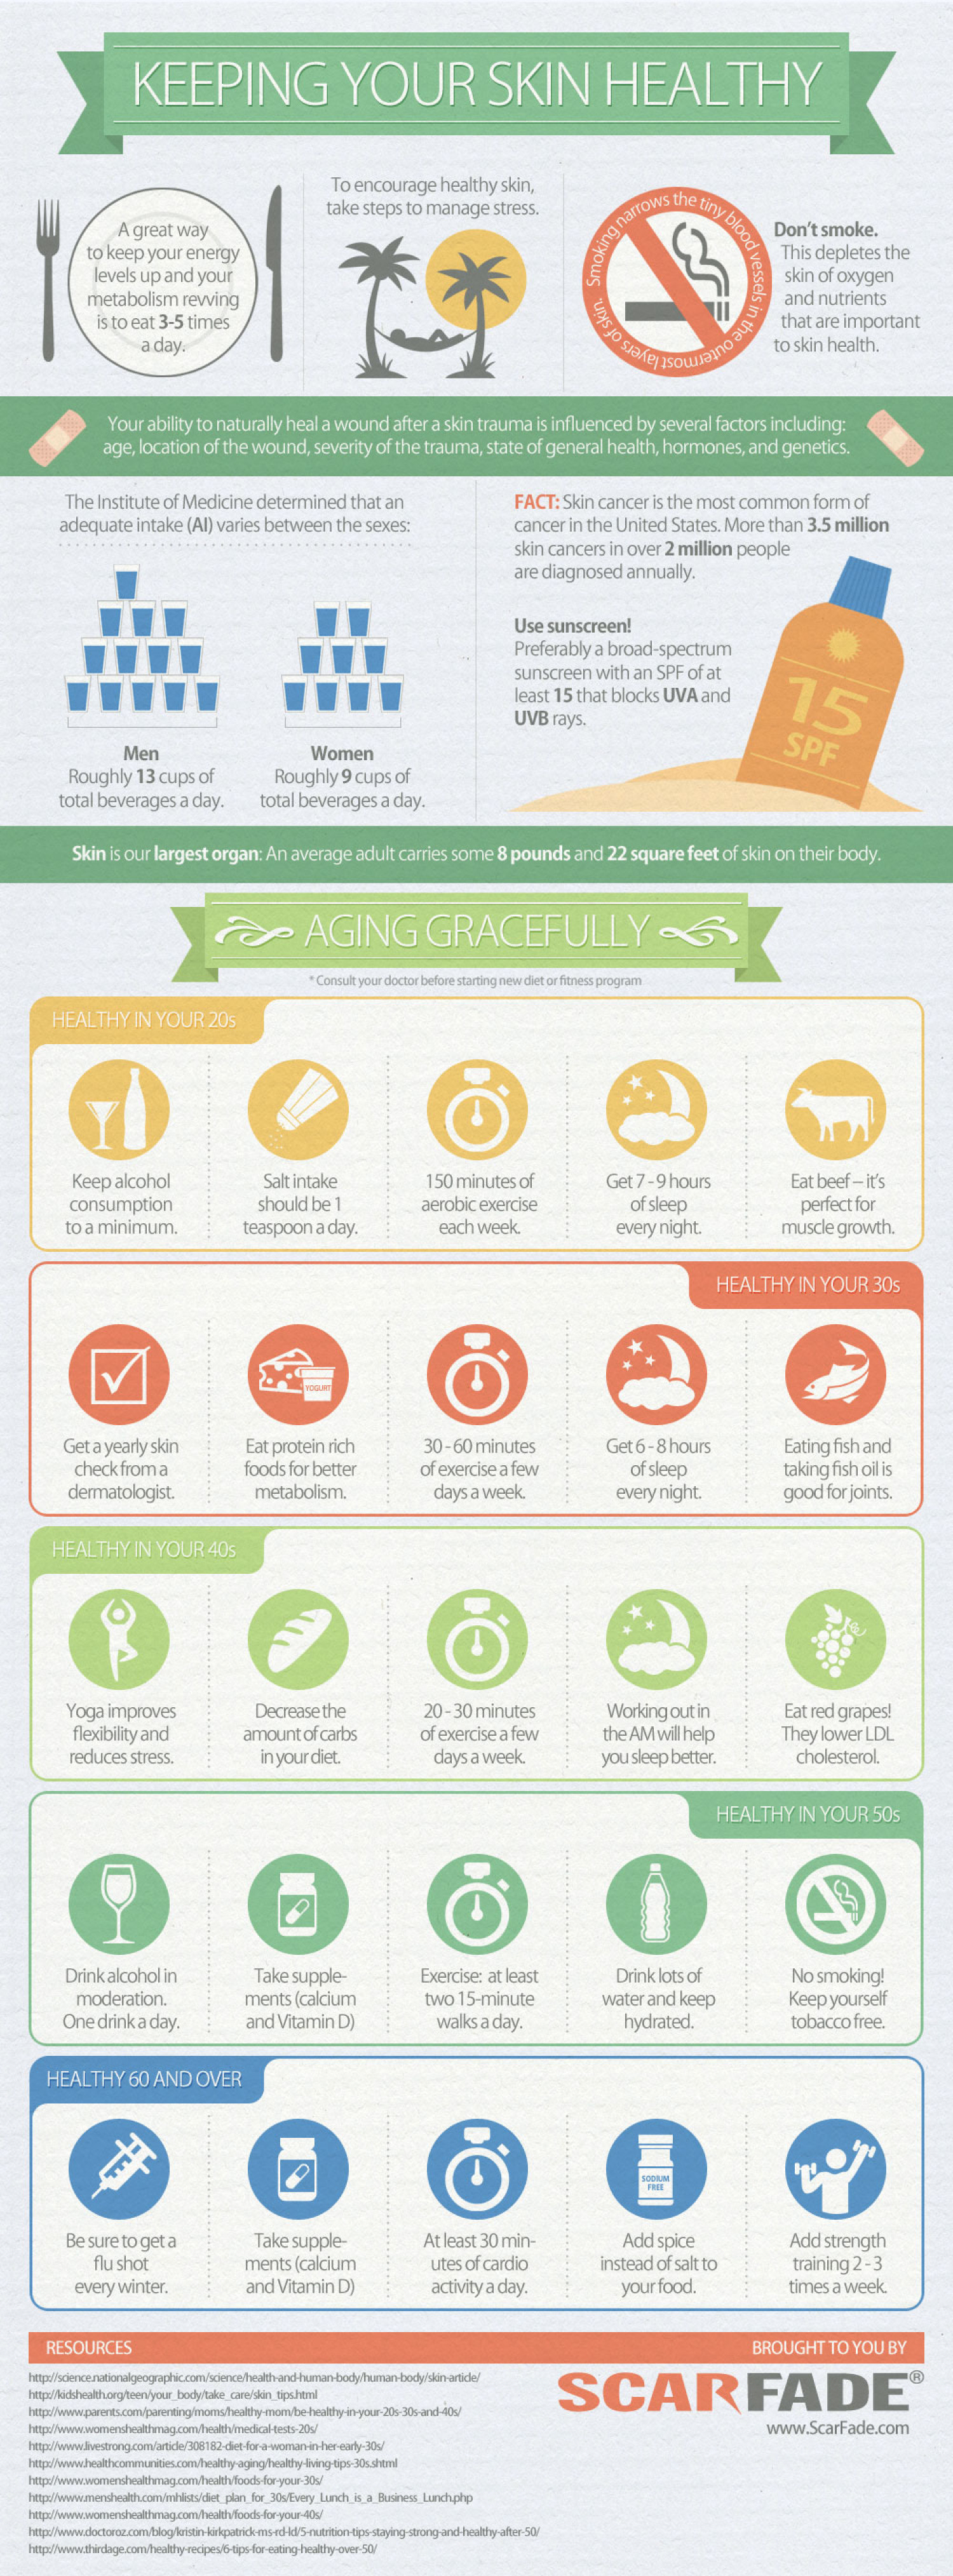 Keeping Your Skin Healthy Infographic